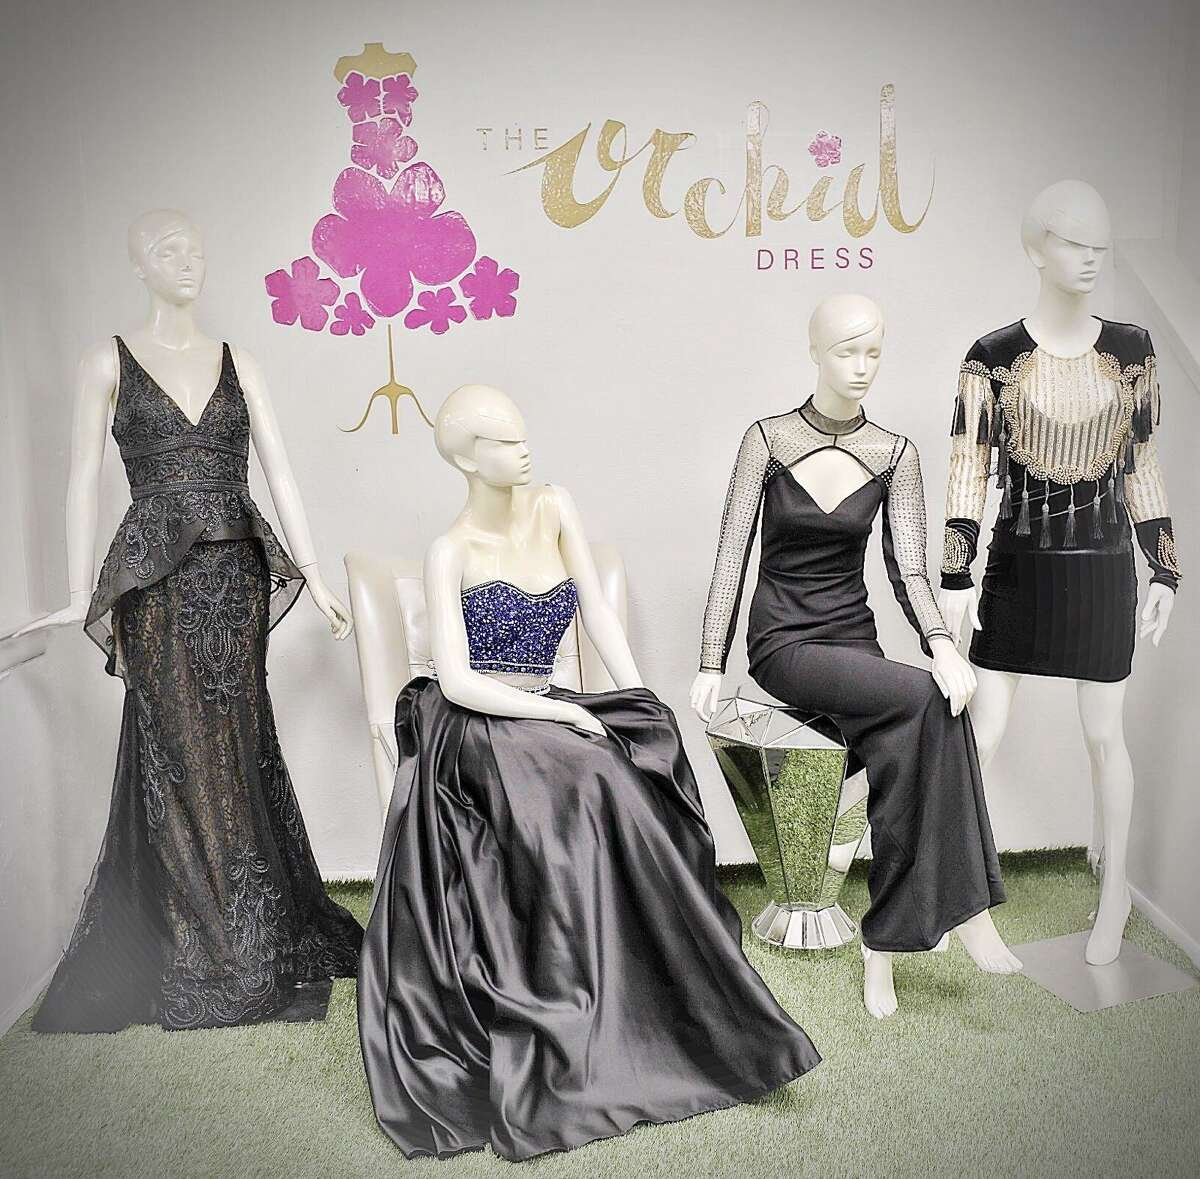 The Orchid Dress 6645 San Pedro Avenue, 210-201-6801, facebook.com/theorchiddress The Orchid Dress rents and sells evening gowns as well as wedding and prom dresses and even casual wear, with wholesalers from Los Angeles, Turkey, Atlanta and Las Vegas. Rent the garment for three days, with prices ranging from $30 to $150 depending on the brand and style. Owner Indira Lee also does in-store alterations, and is working on her own fashion line of dresses, with some in the shop.